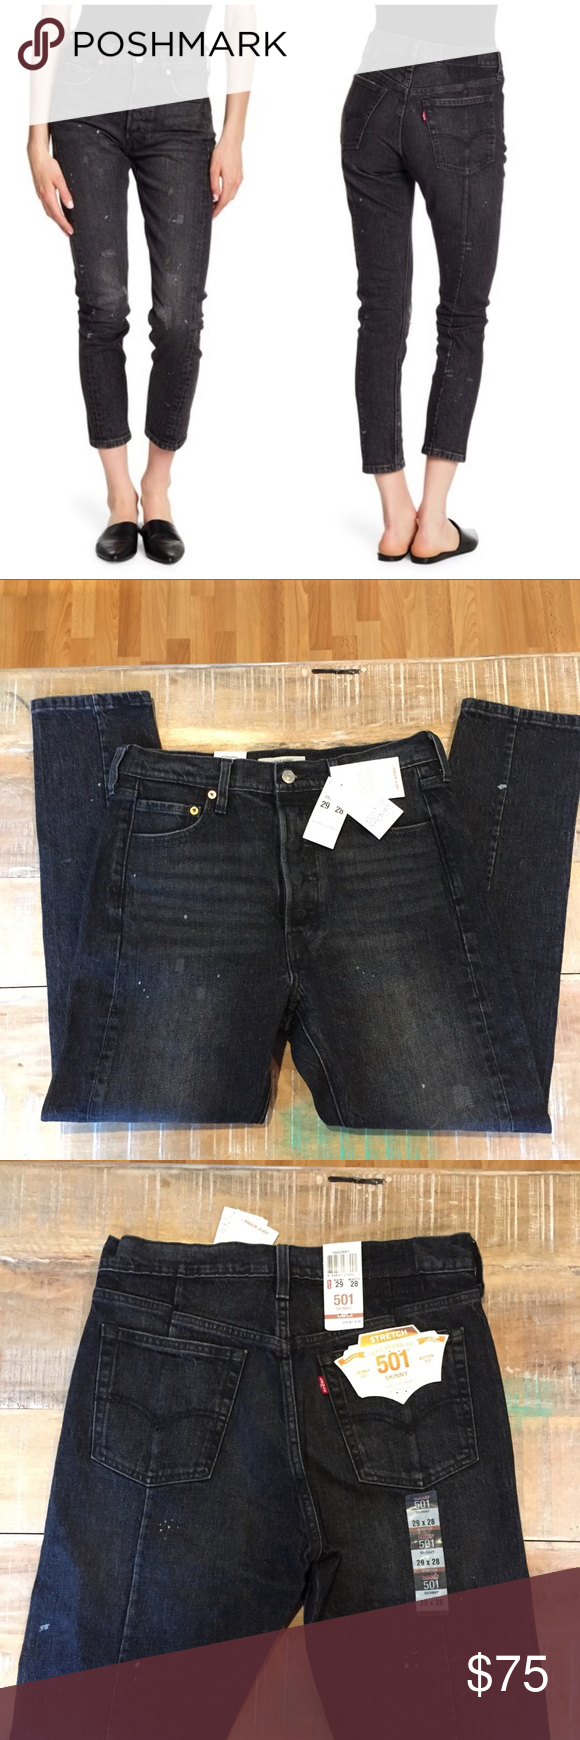 9d18980f NWT Levi's 501 Altered Skinny Stretch Jeans 29 Paint splatters decorate  some slightly distressed skinny jeans